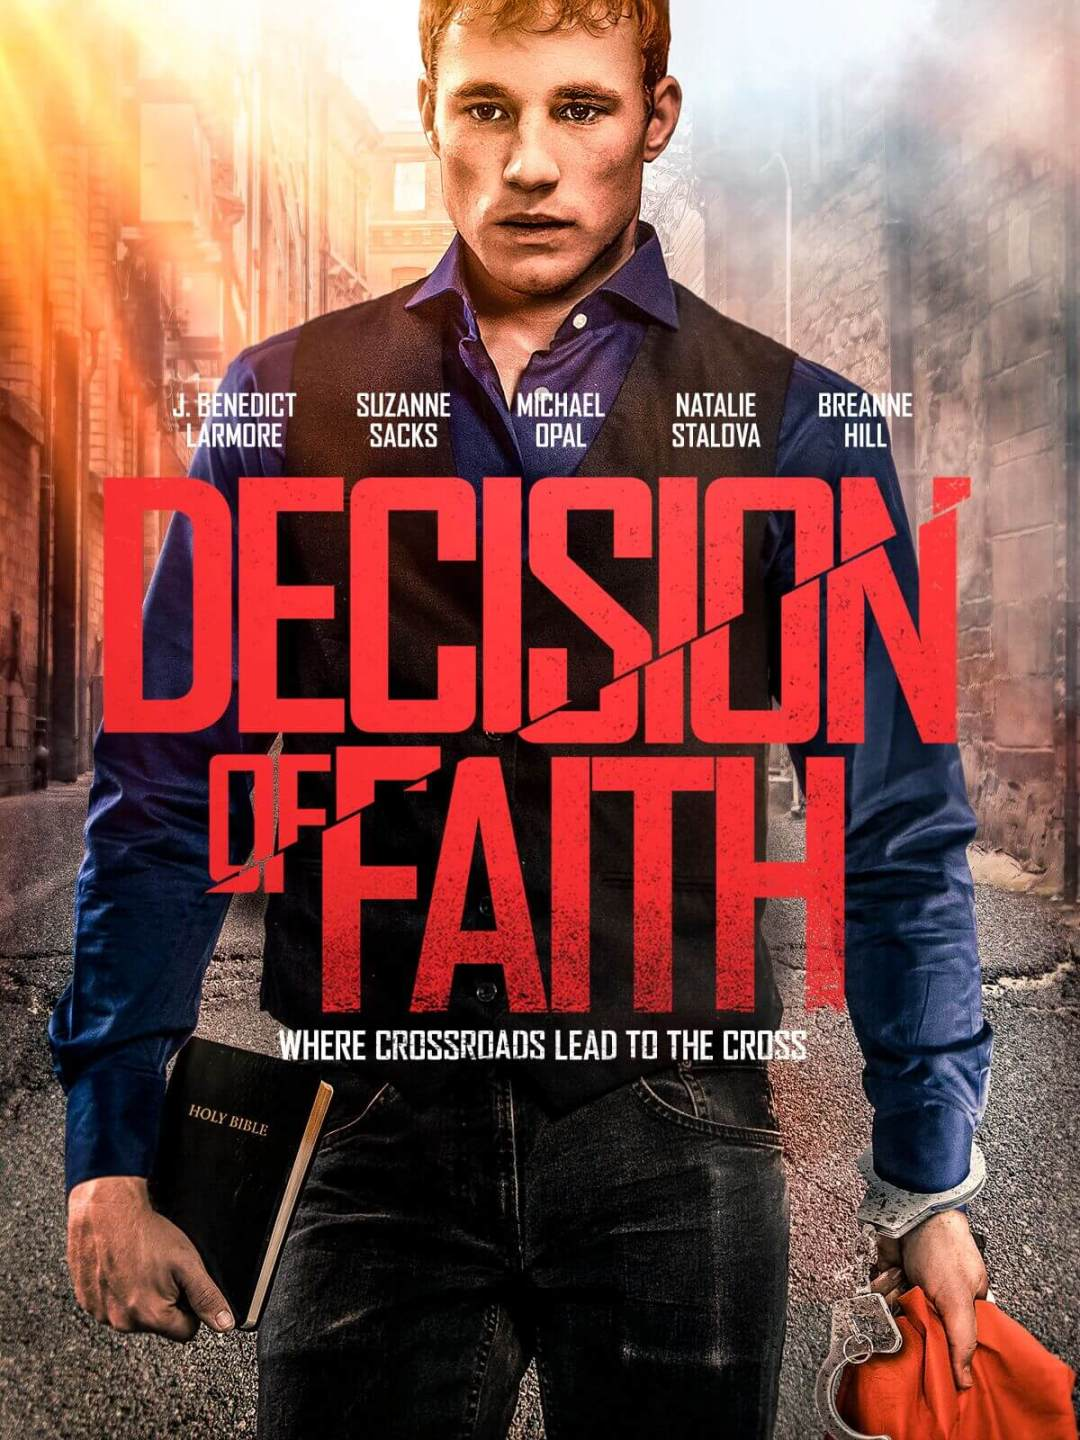 DECISION OF FAITH